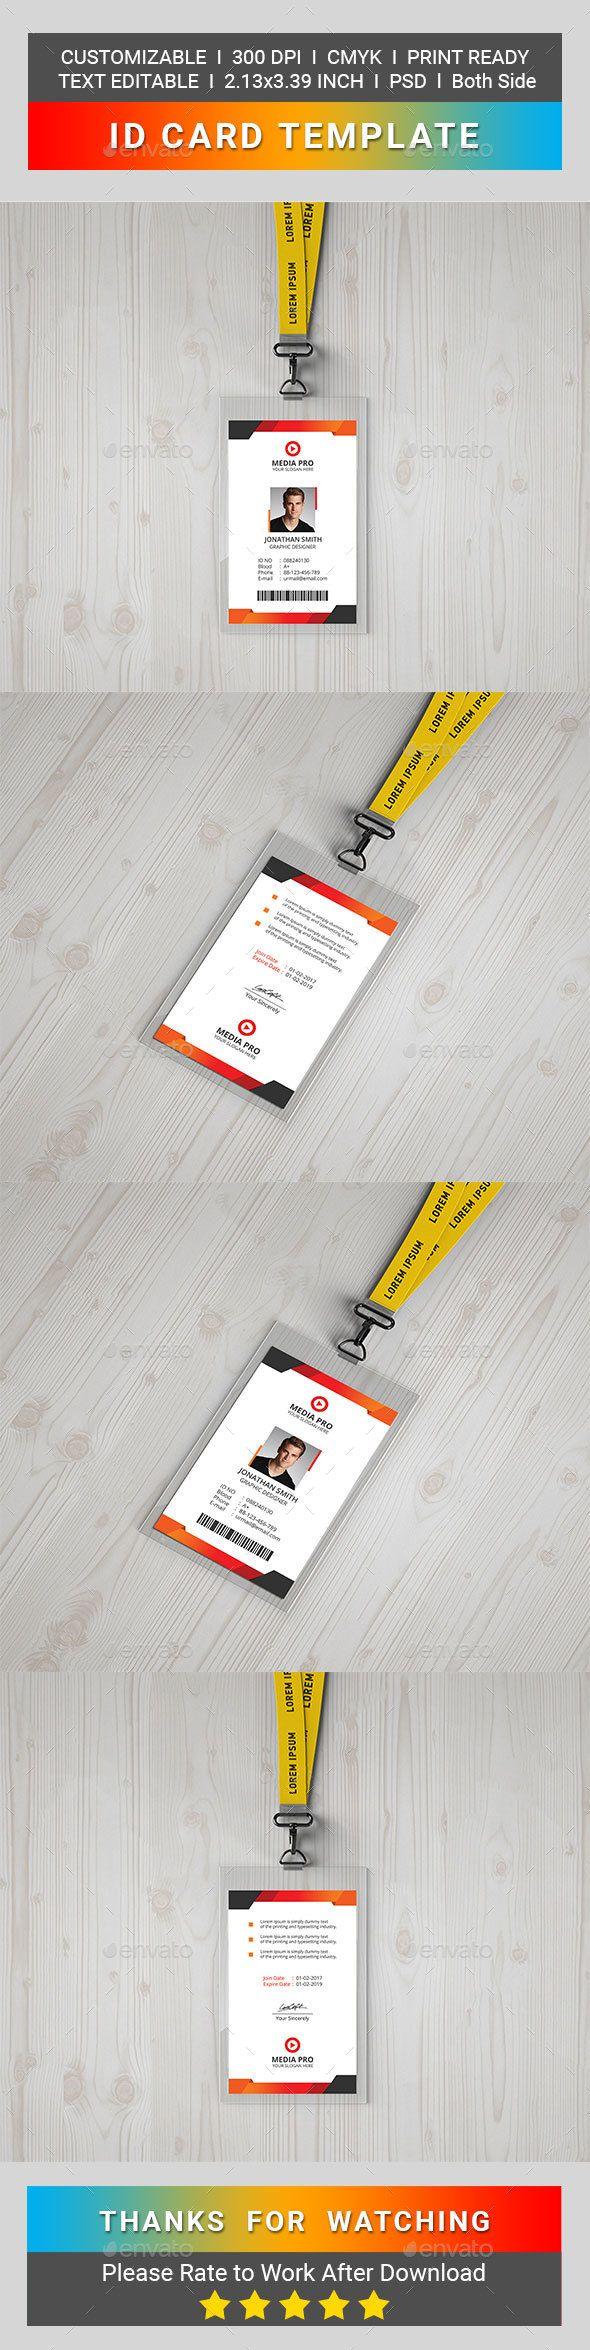 #IDCard - Miscellaneous Print Templates